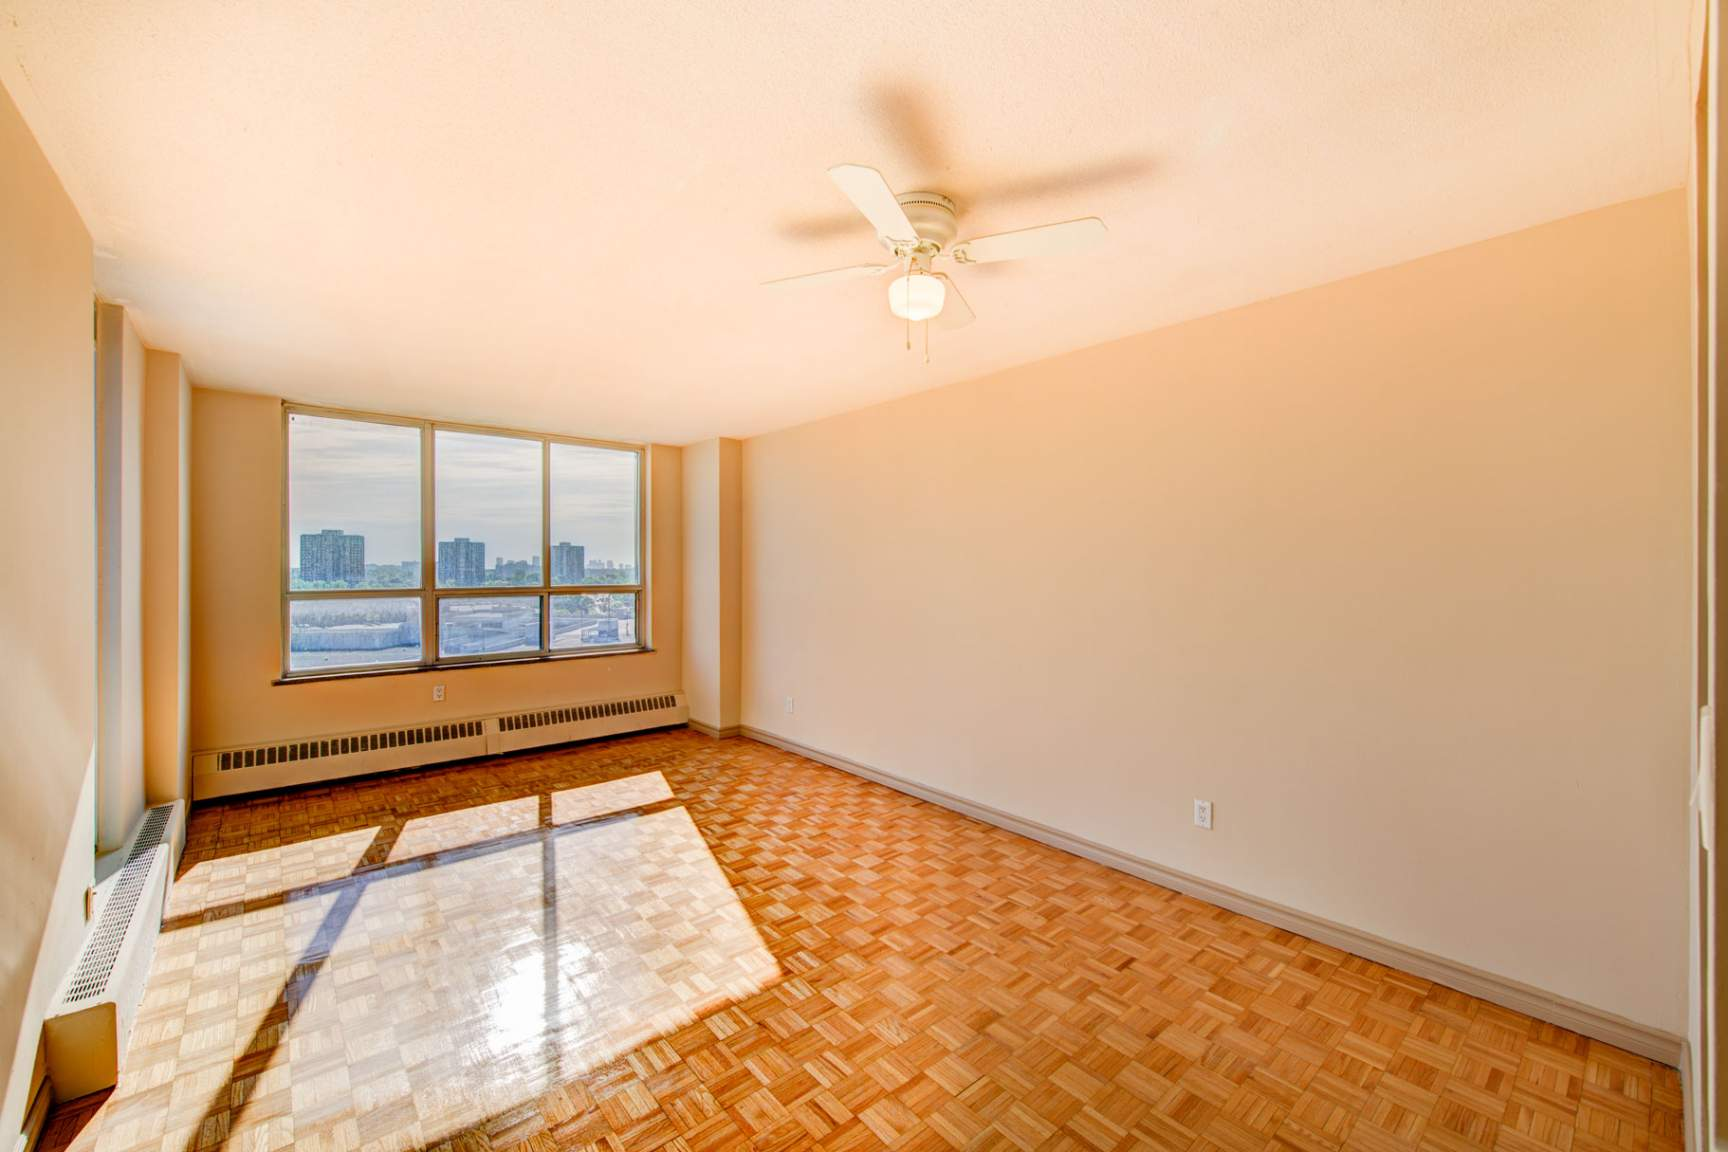 1 bedroom Apartments for rent in North-York at Hunters Lodge - Photo 13 - RentersPages – L400651